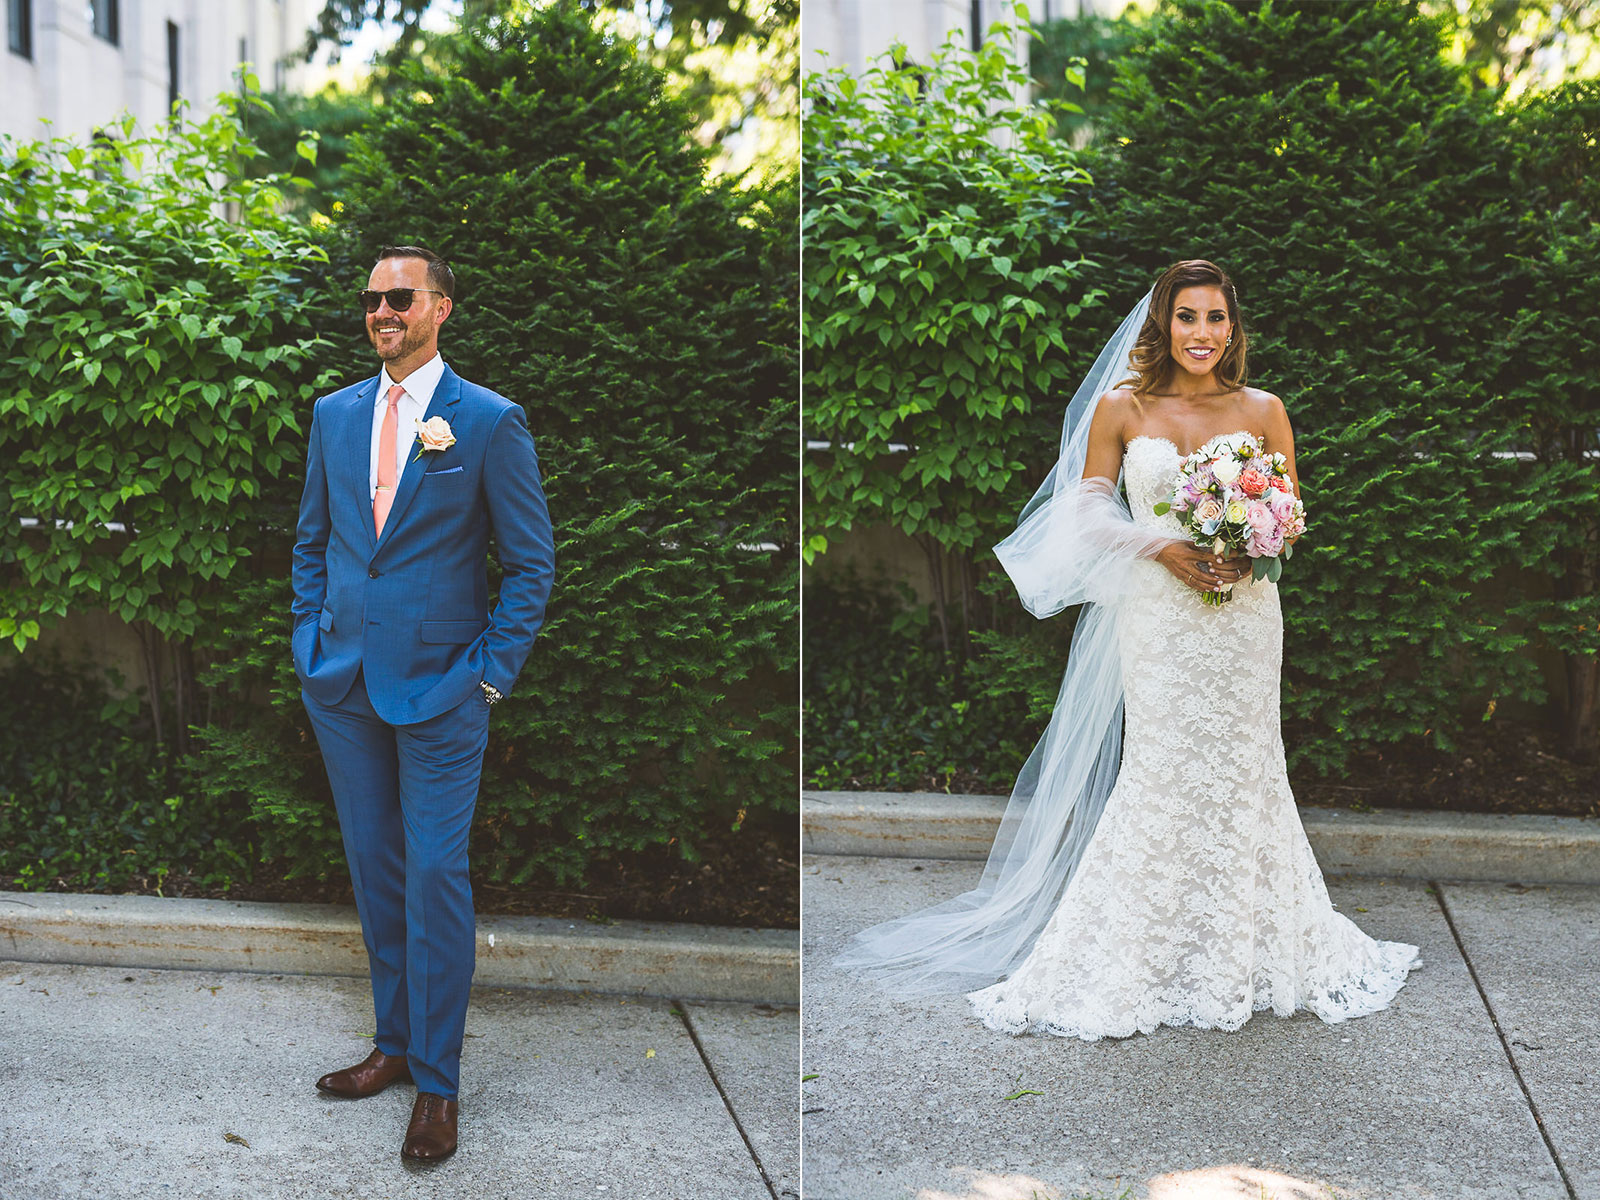 28 groom - Natalie + Alan // Chicago Wedding Photographer at Cafe Brauer